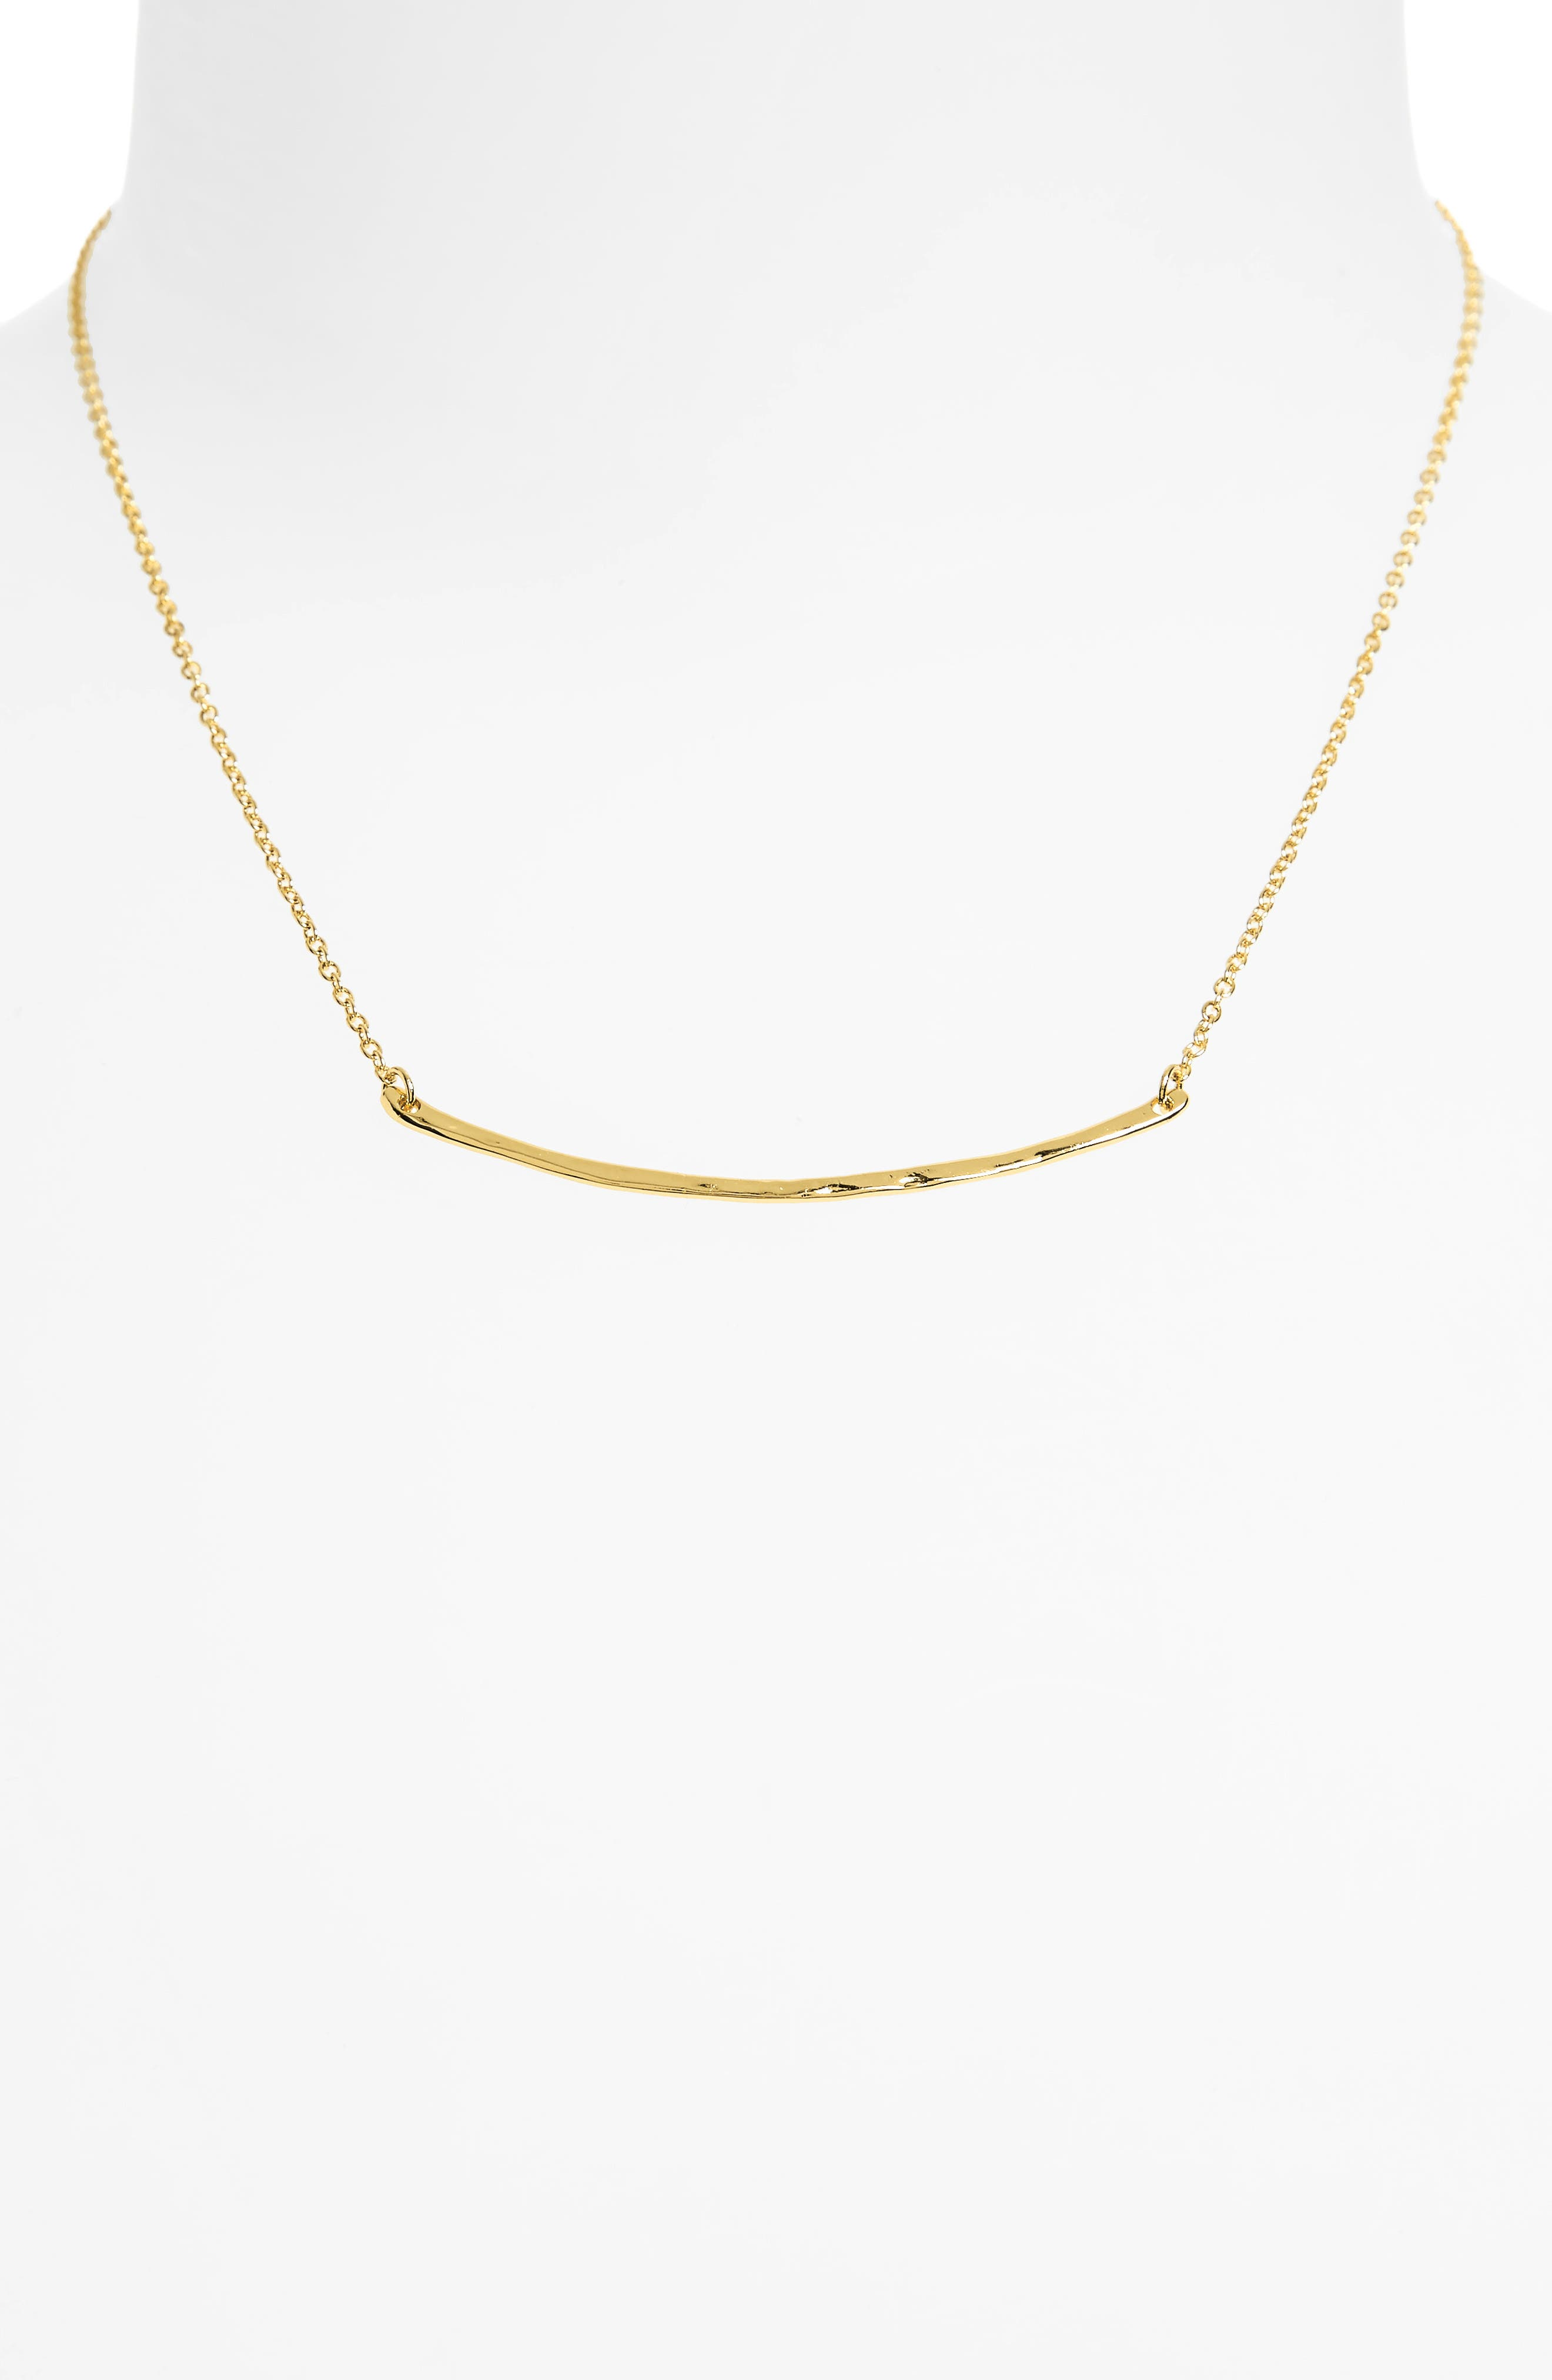 Taner Bar Small Necklace,                             Alternate thumbnail 2, color,                             Gold